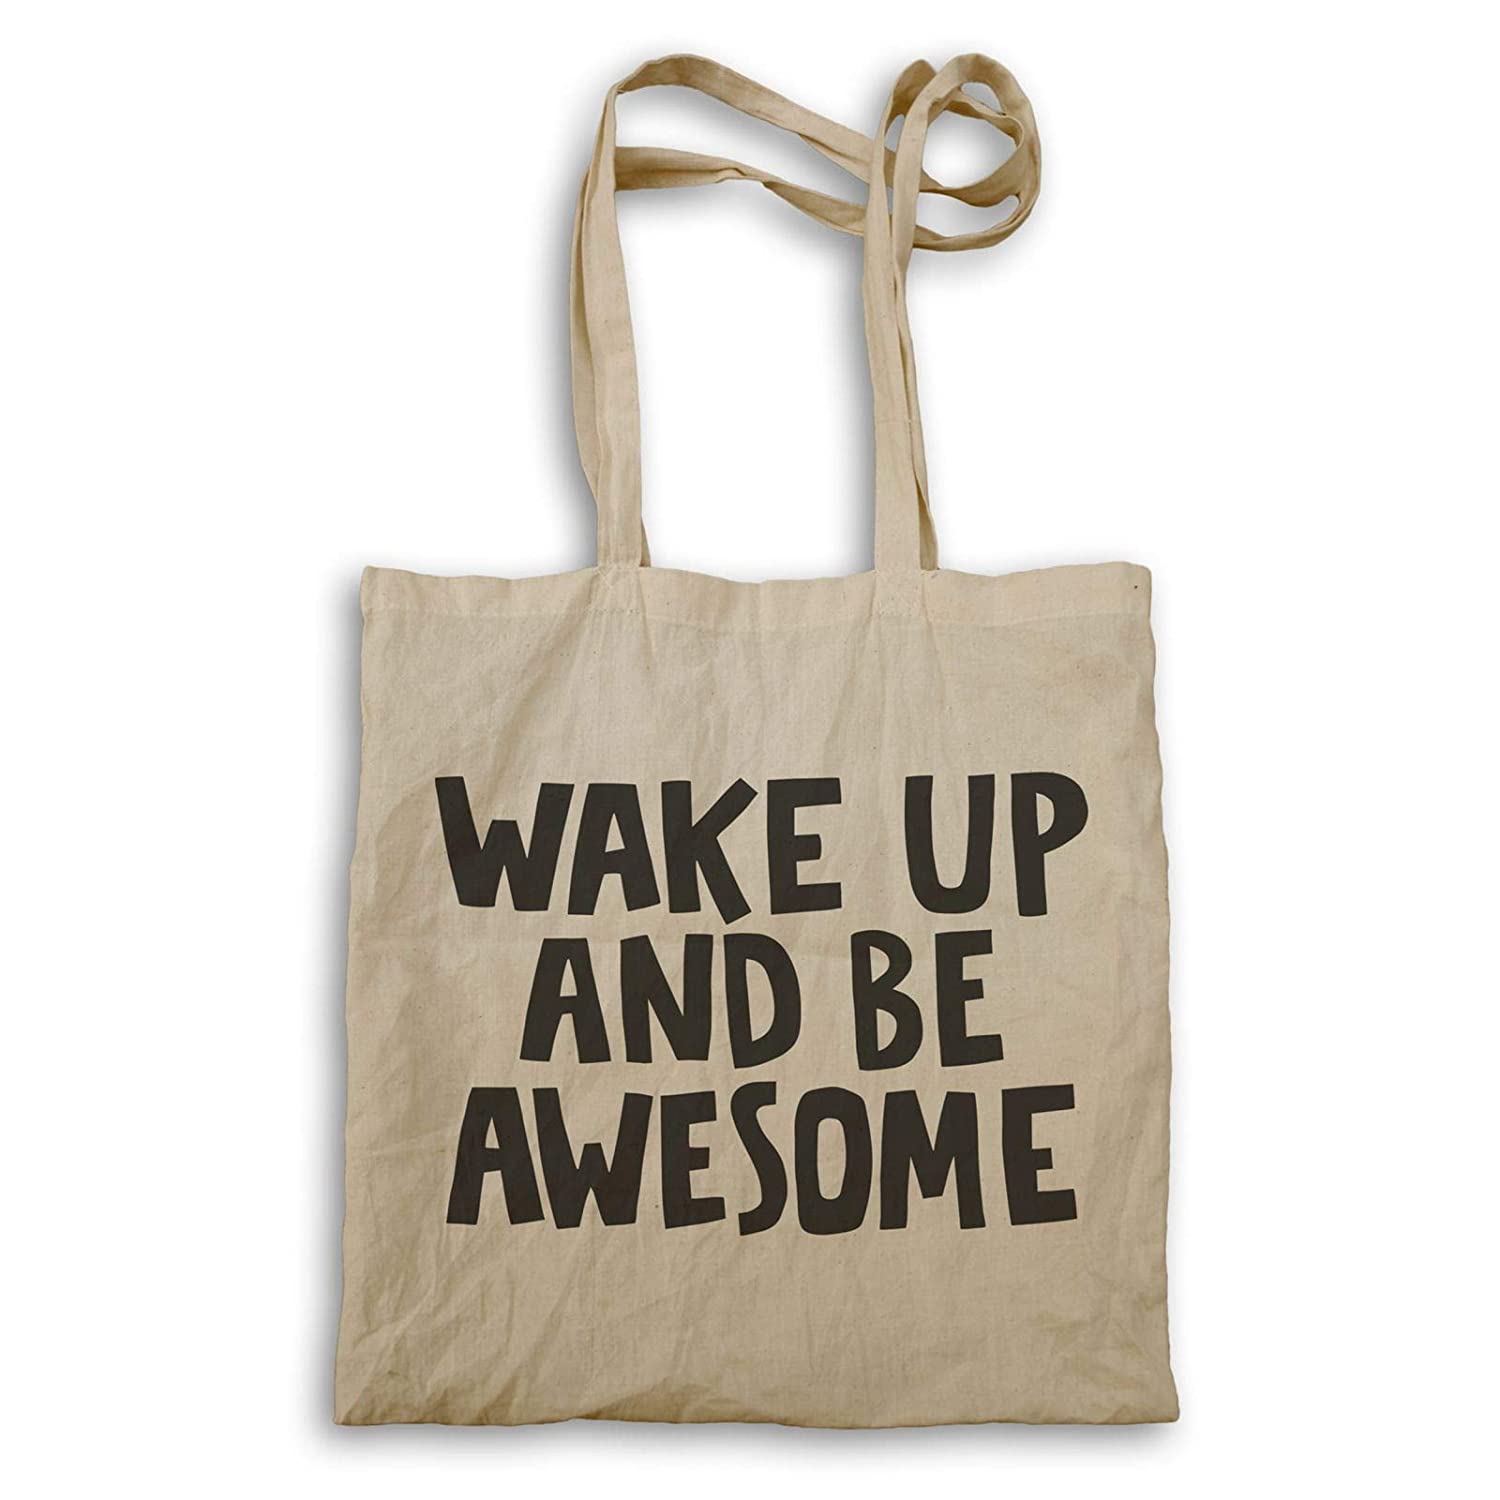 INNOGLEN Wake Up and Be Awesome Sac à Main ee643r